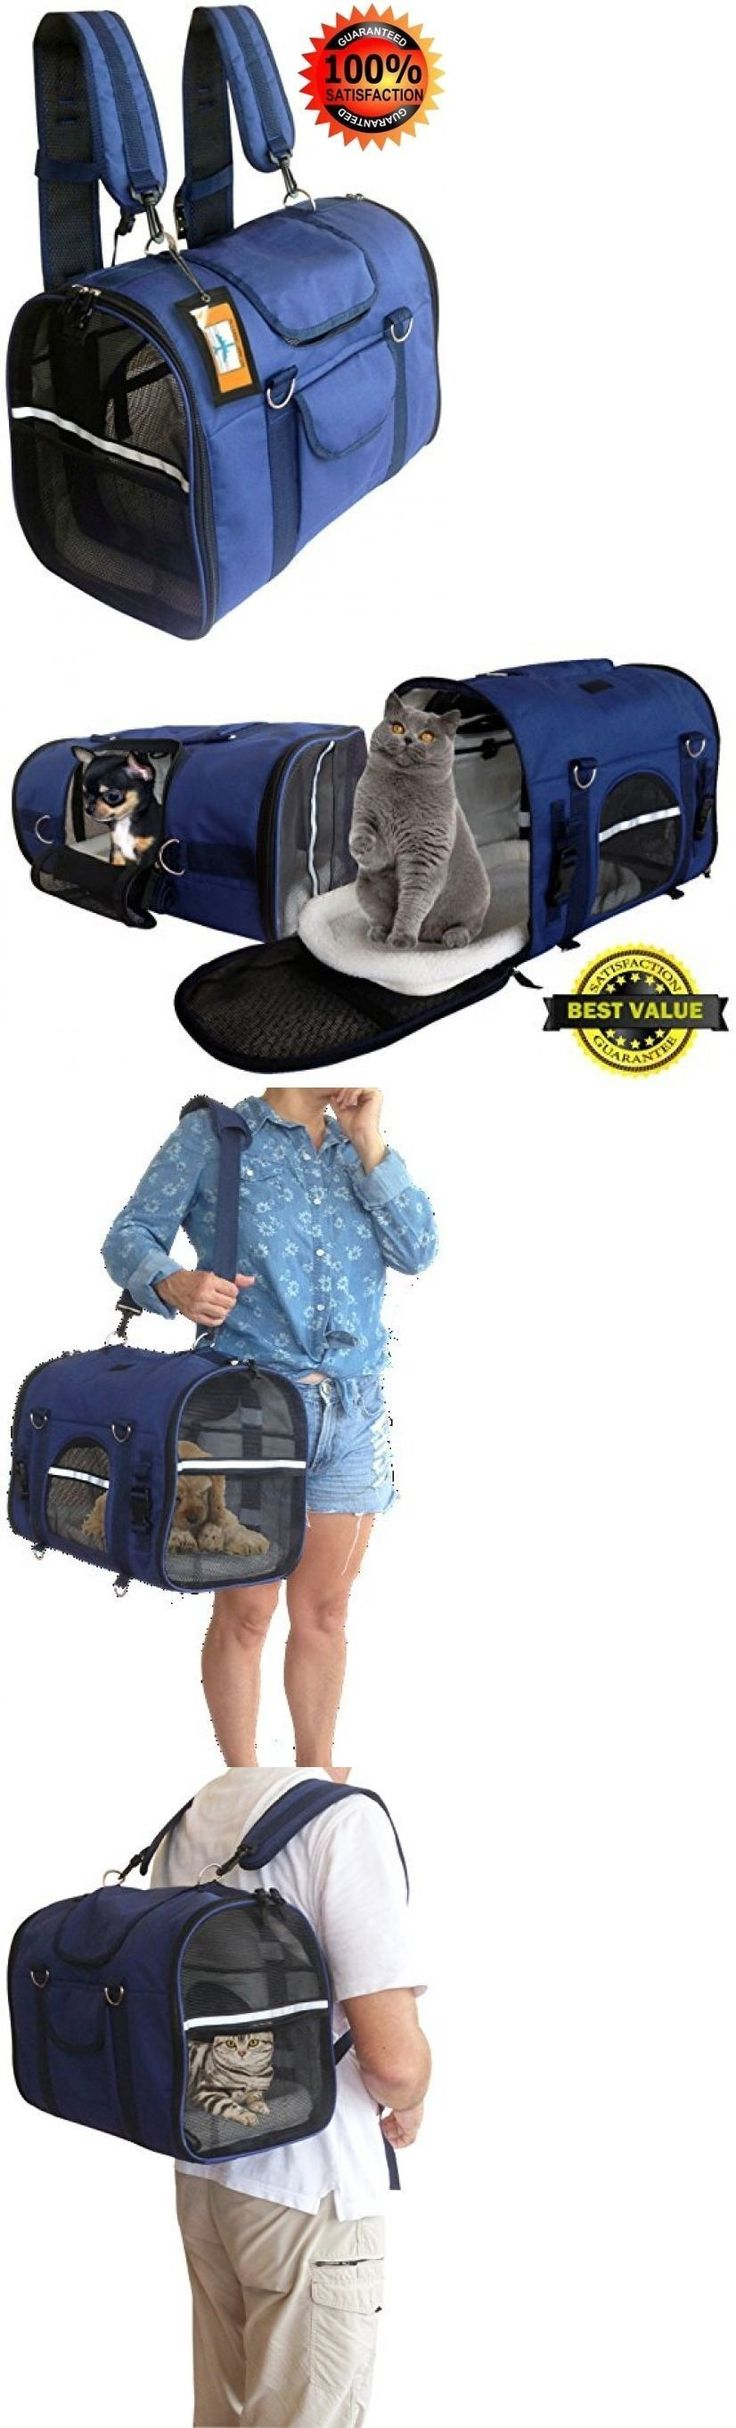 Carriers and Totes 177788: Southwest Airlines Pet Carrier Airline Approved Backpack Car Seat Cat Dog BUY IT NOW ONLY: $96.69 #PetCarriers